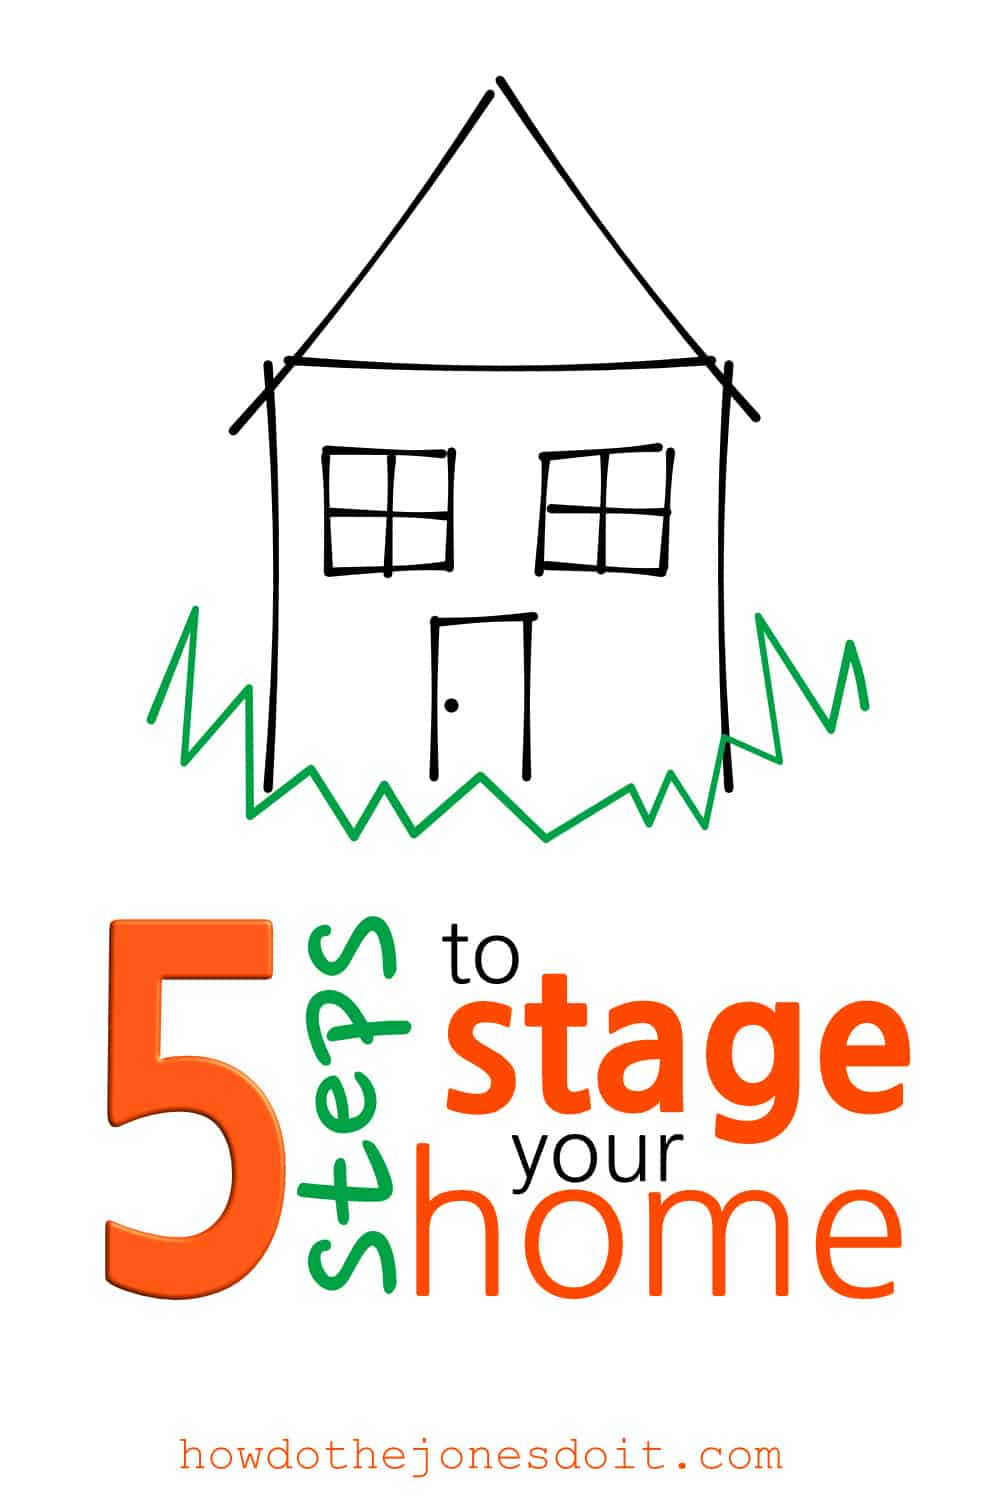 When it's time to stage your home, it's easy to get stressed and overwhelmed. It may even seem like you're turning your house upside down and chaos is winning. Spiff up your yard, sell your stuff, pack what you don't need before the mover, freshen up your home, and show a home filled with happiness!